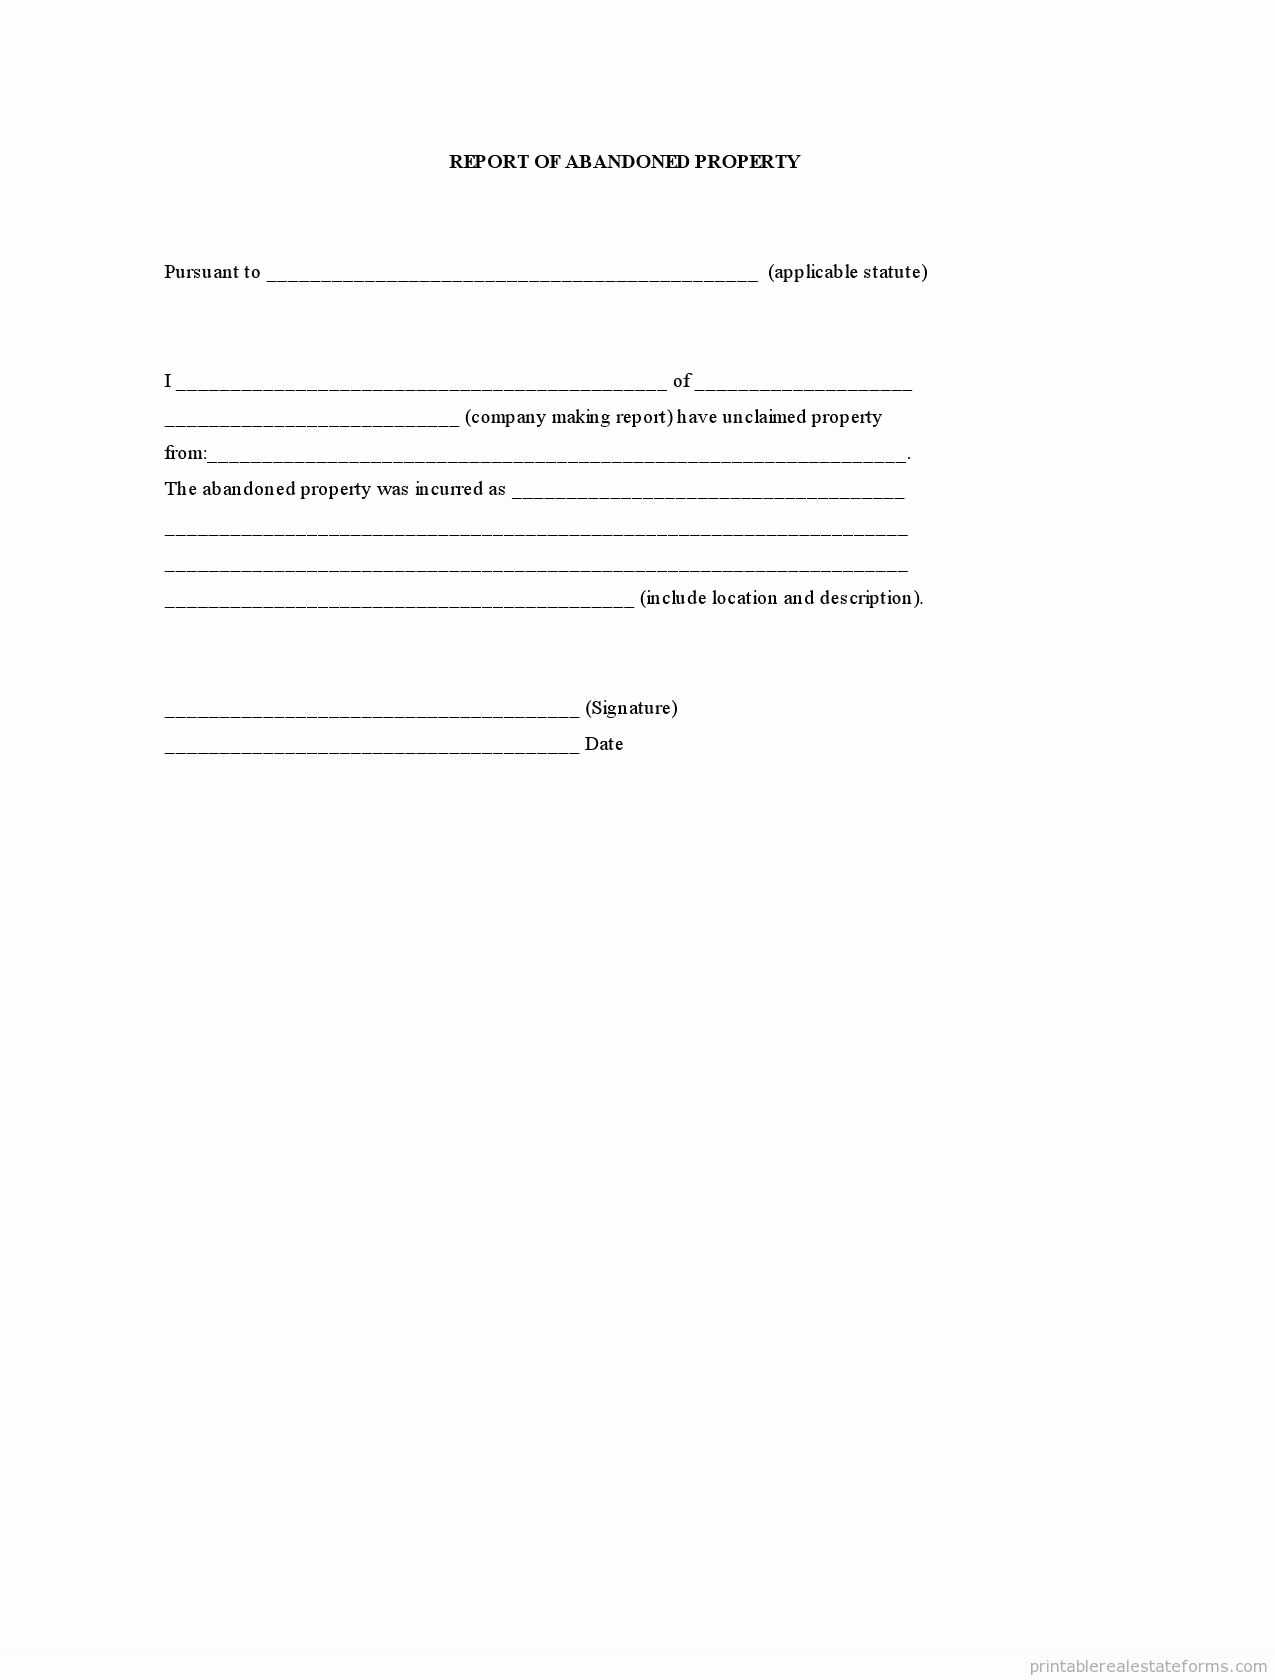 Drug Education Worksheets together with Printable Resume Worksheet Myacereporter